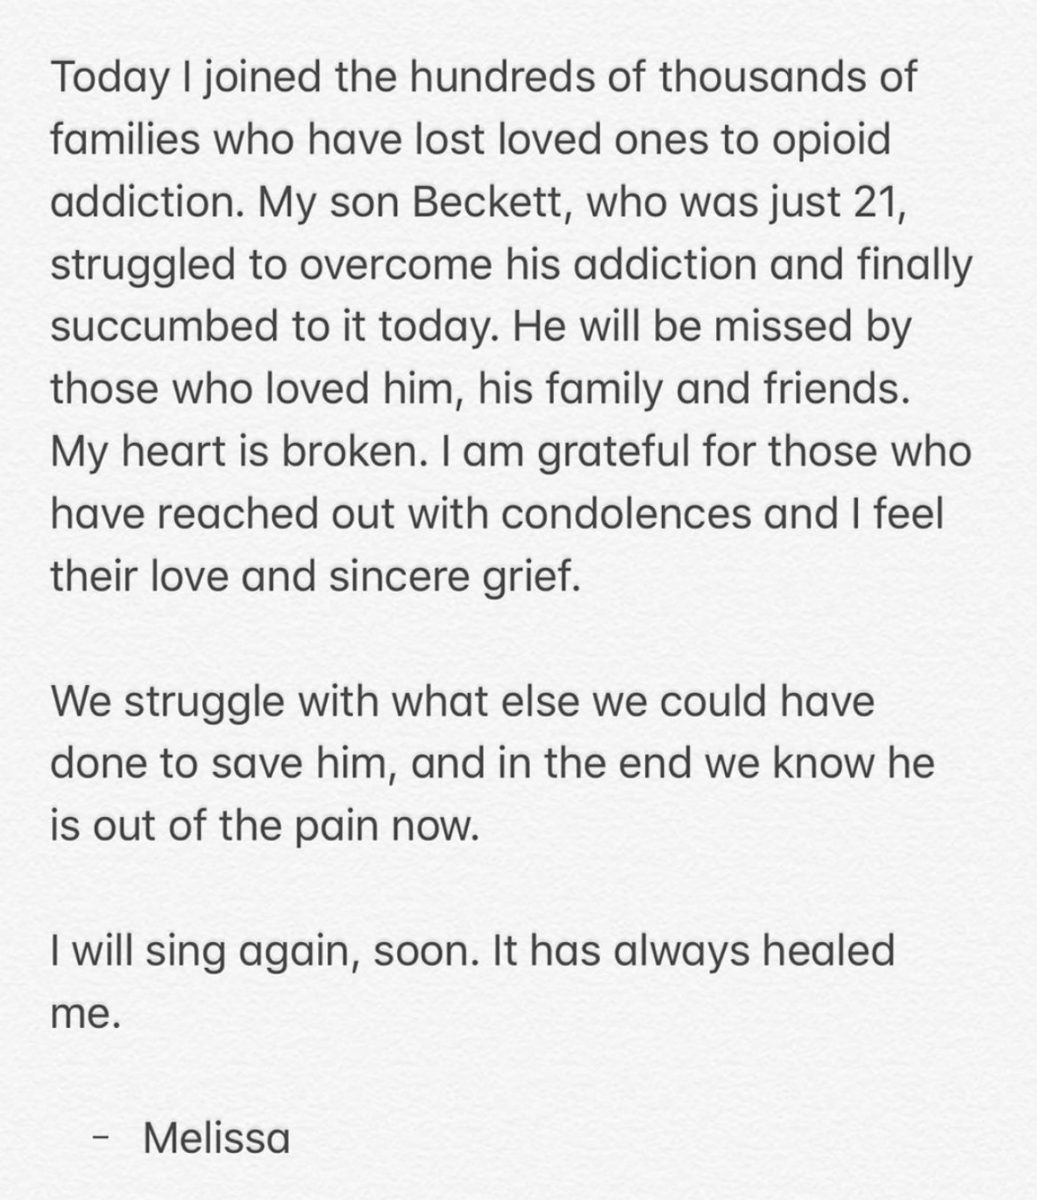 Melissa Etheridge Gives Update After Son's Death